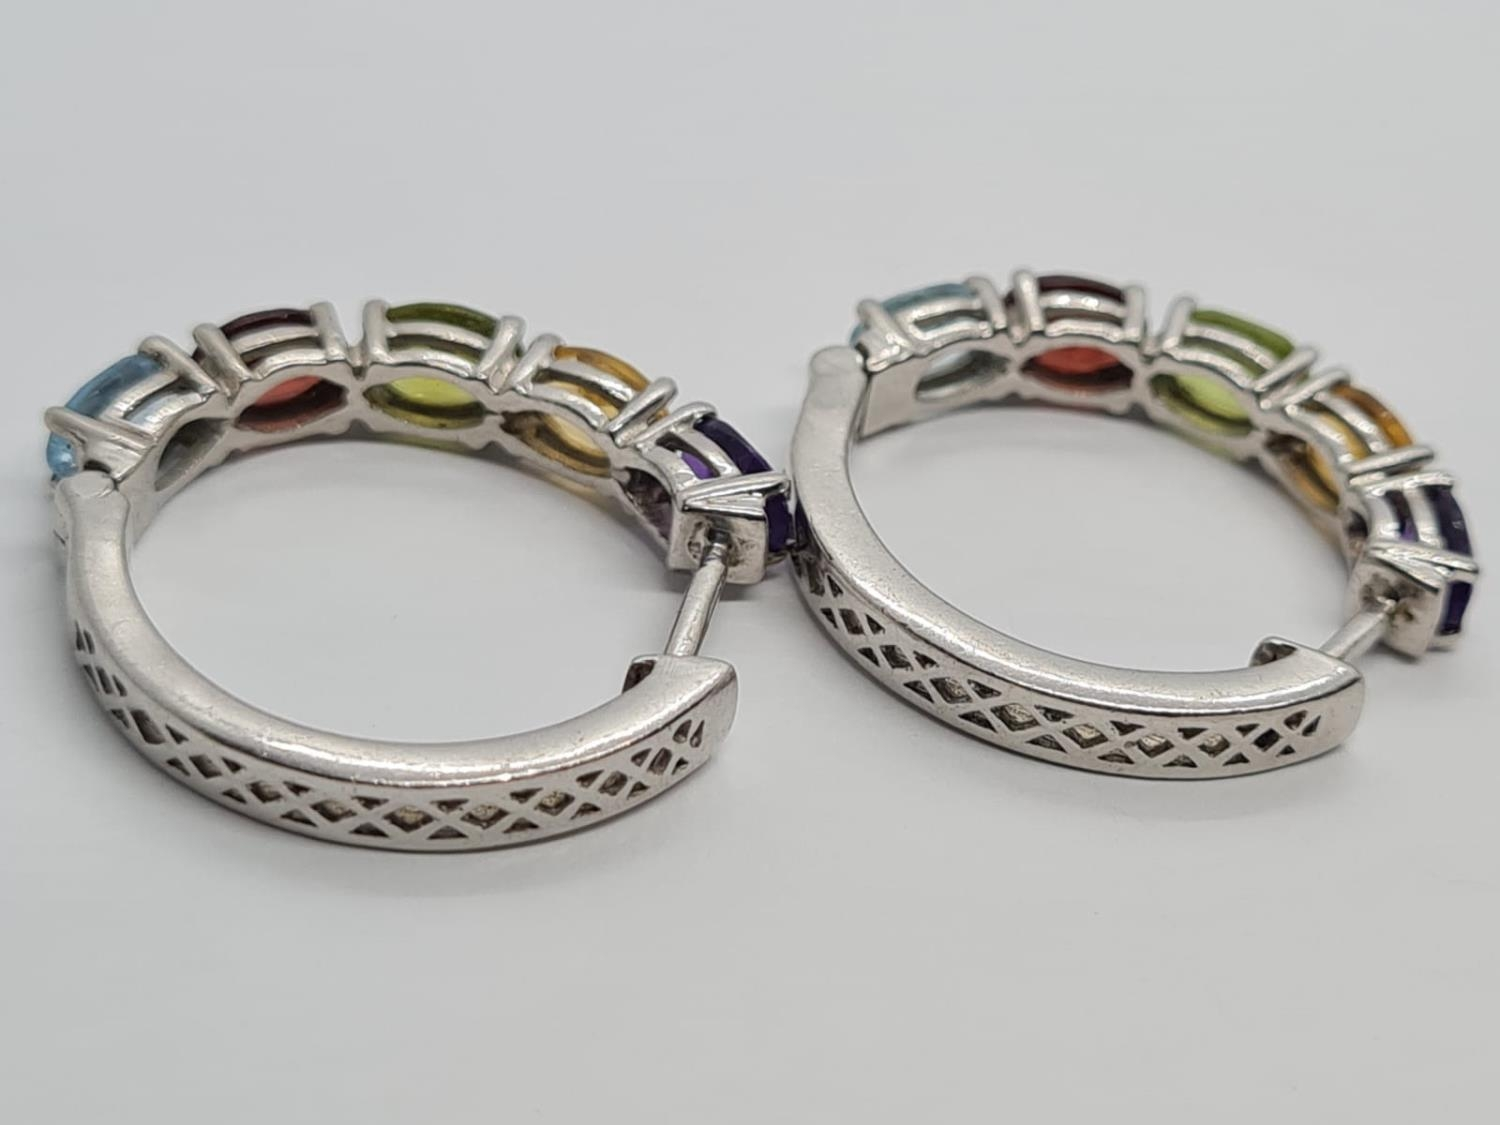 PAIR OF STERLING SILVER MULTI STONE HOOP EARRINGS WEIGHT 6.5G AND 2.5CM DIAMETER APPROX - Image 4 of 4